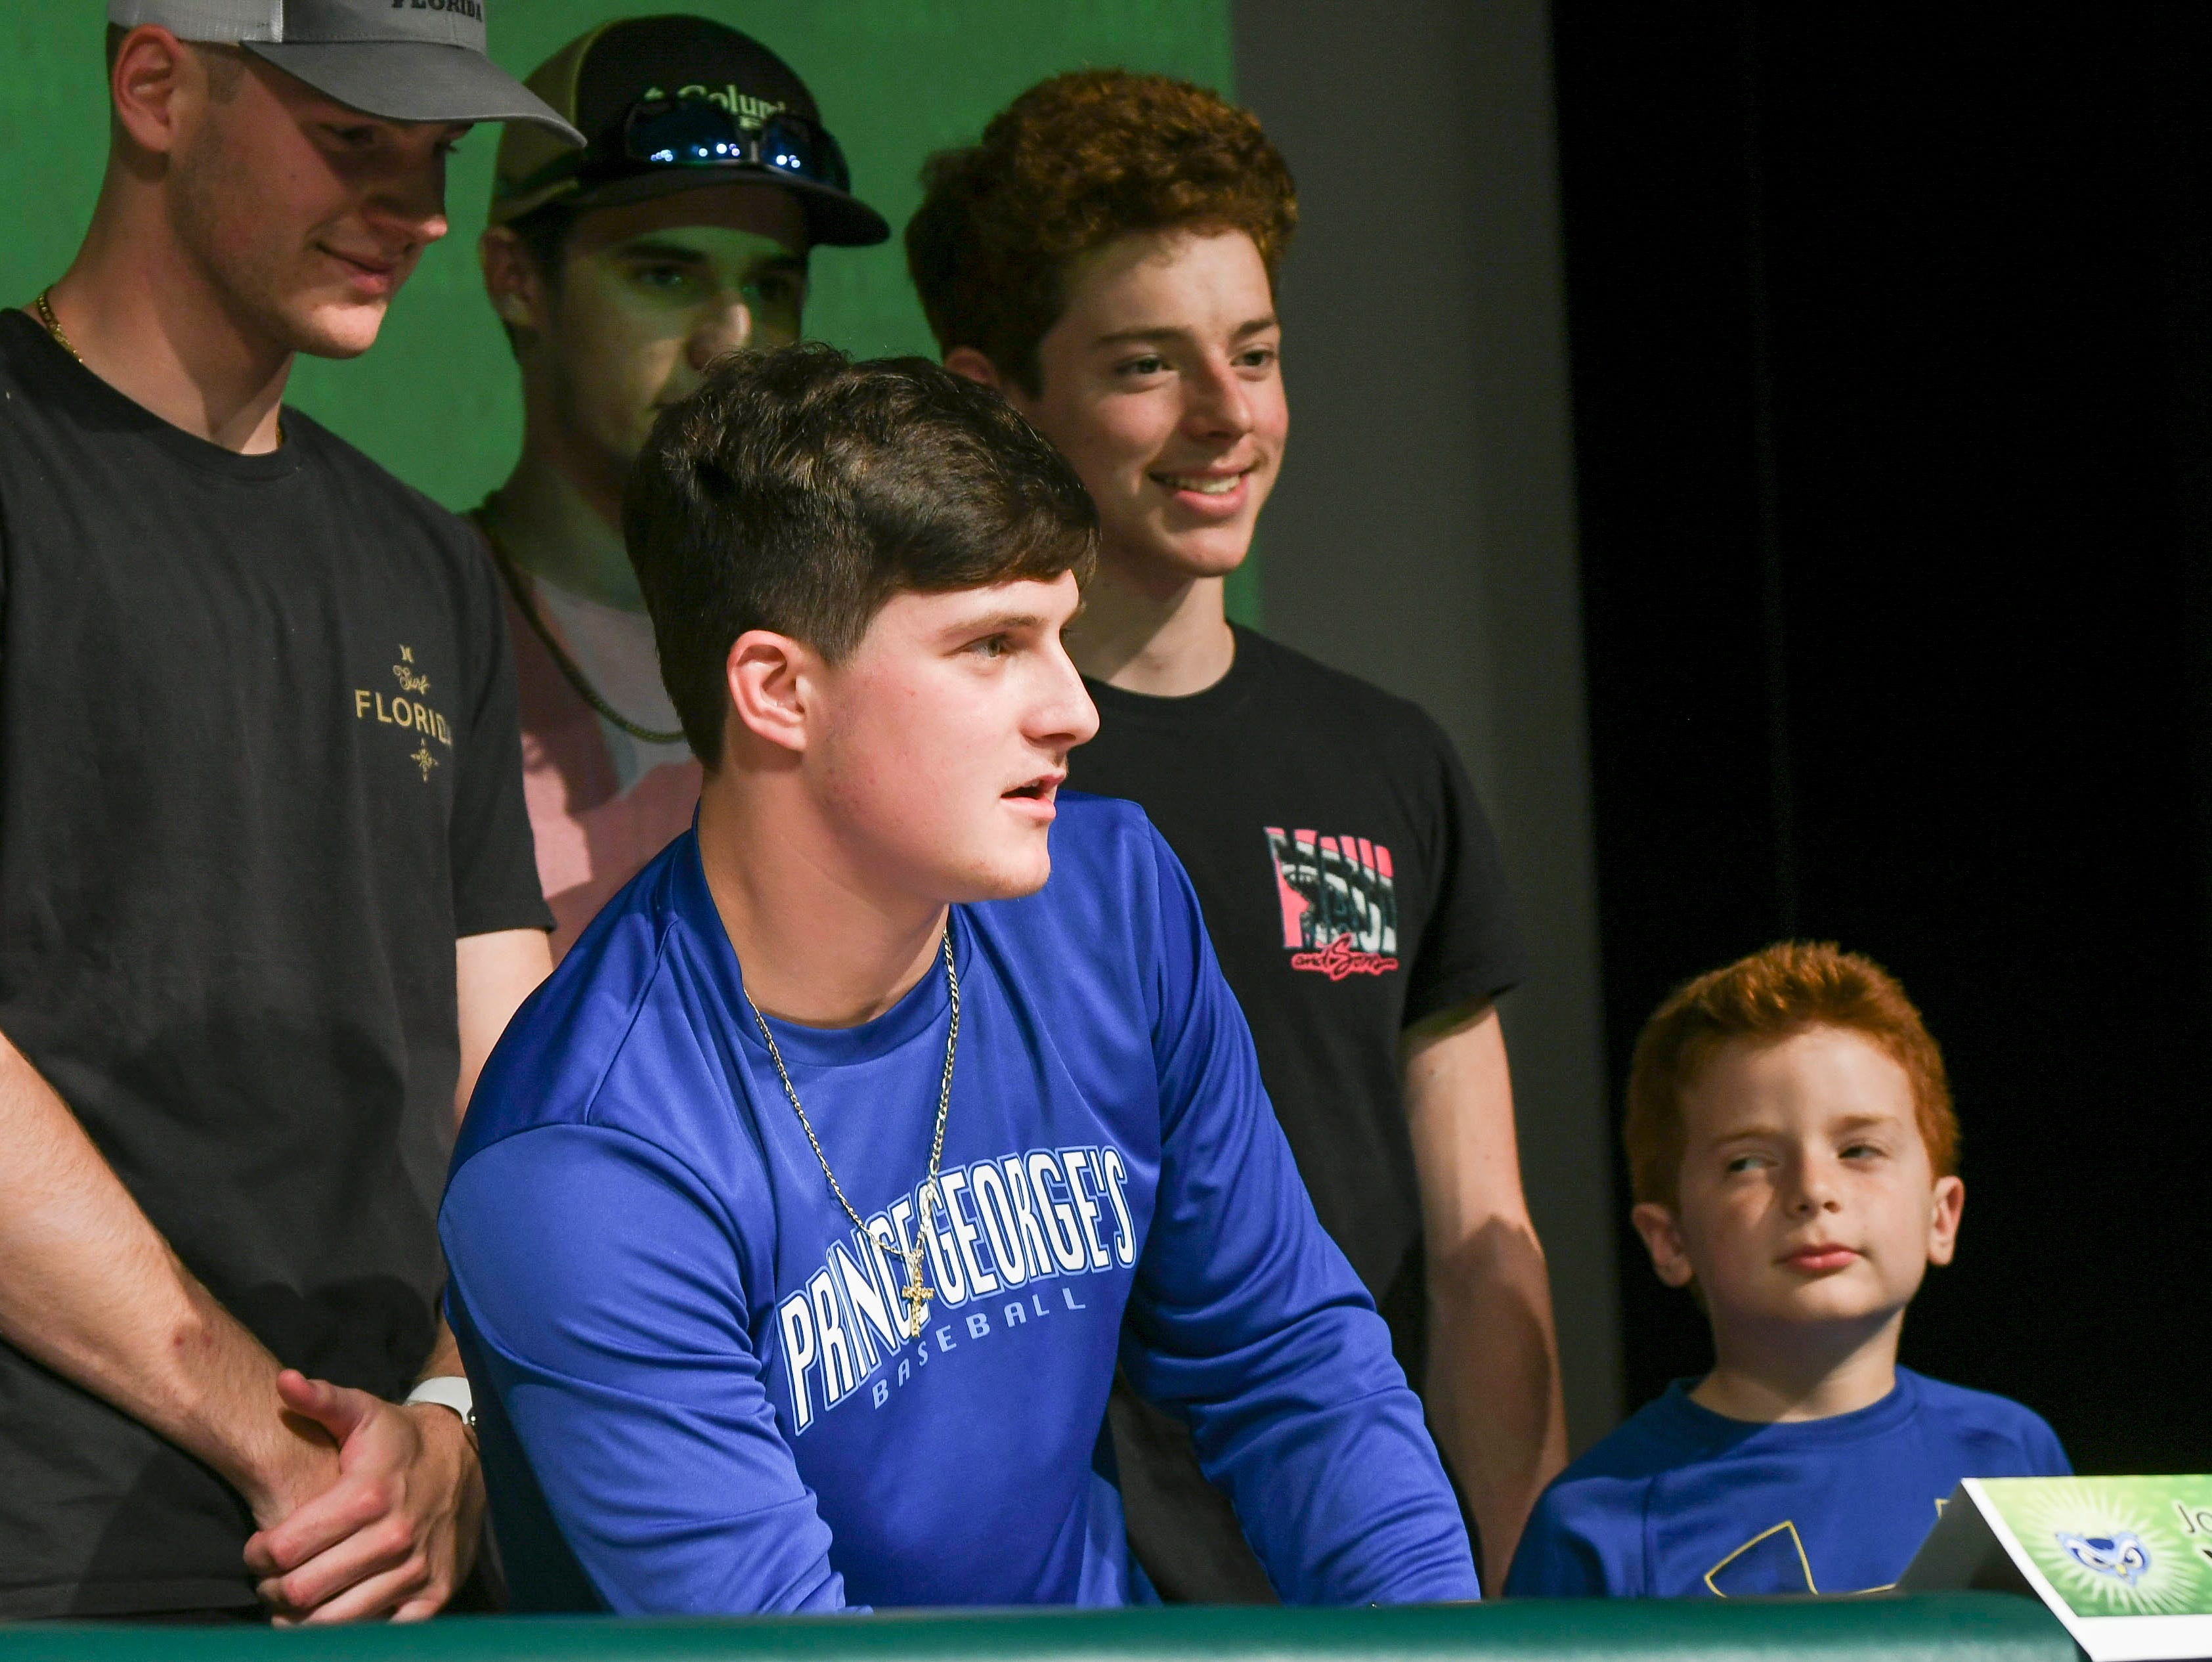 Viera High students Joe Veltri poses for pictures with his family after signing his letter of intent Wednesday during National Signing Day at the school.